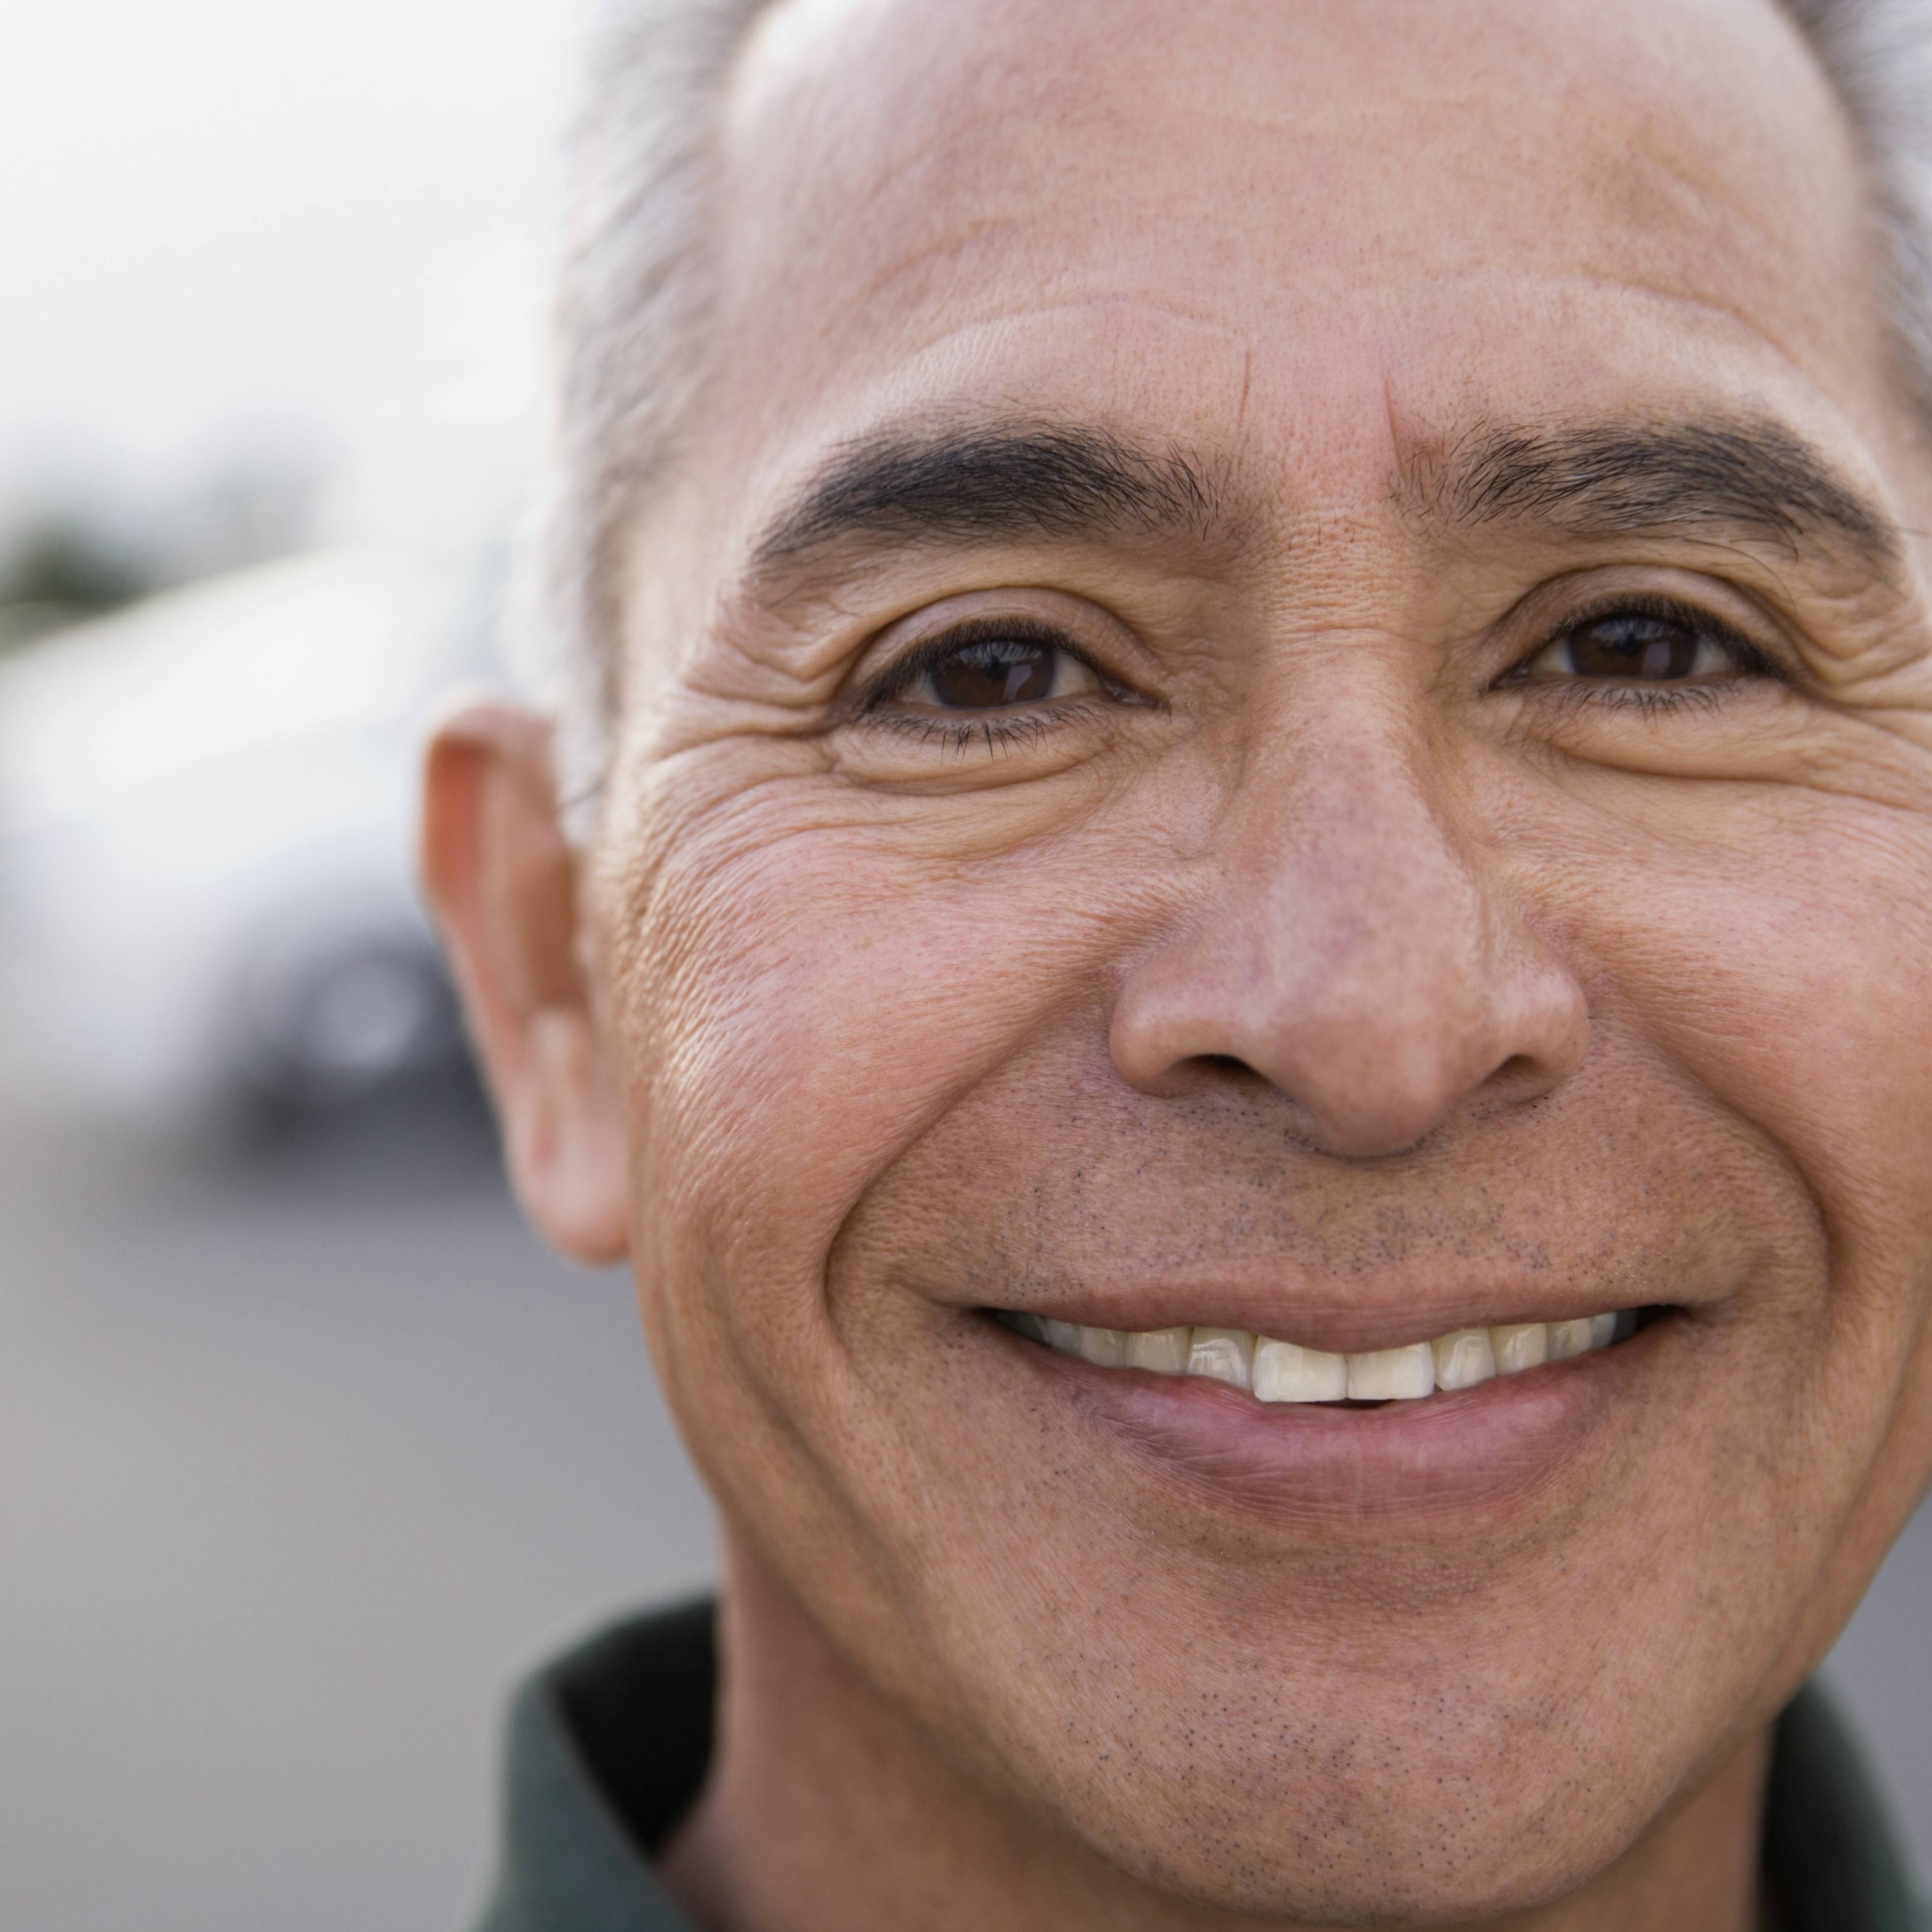 a close-up of a smiling middle-aged man smiling